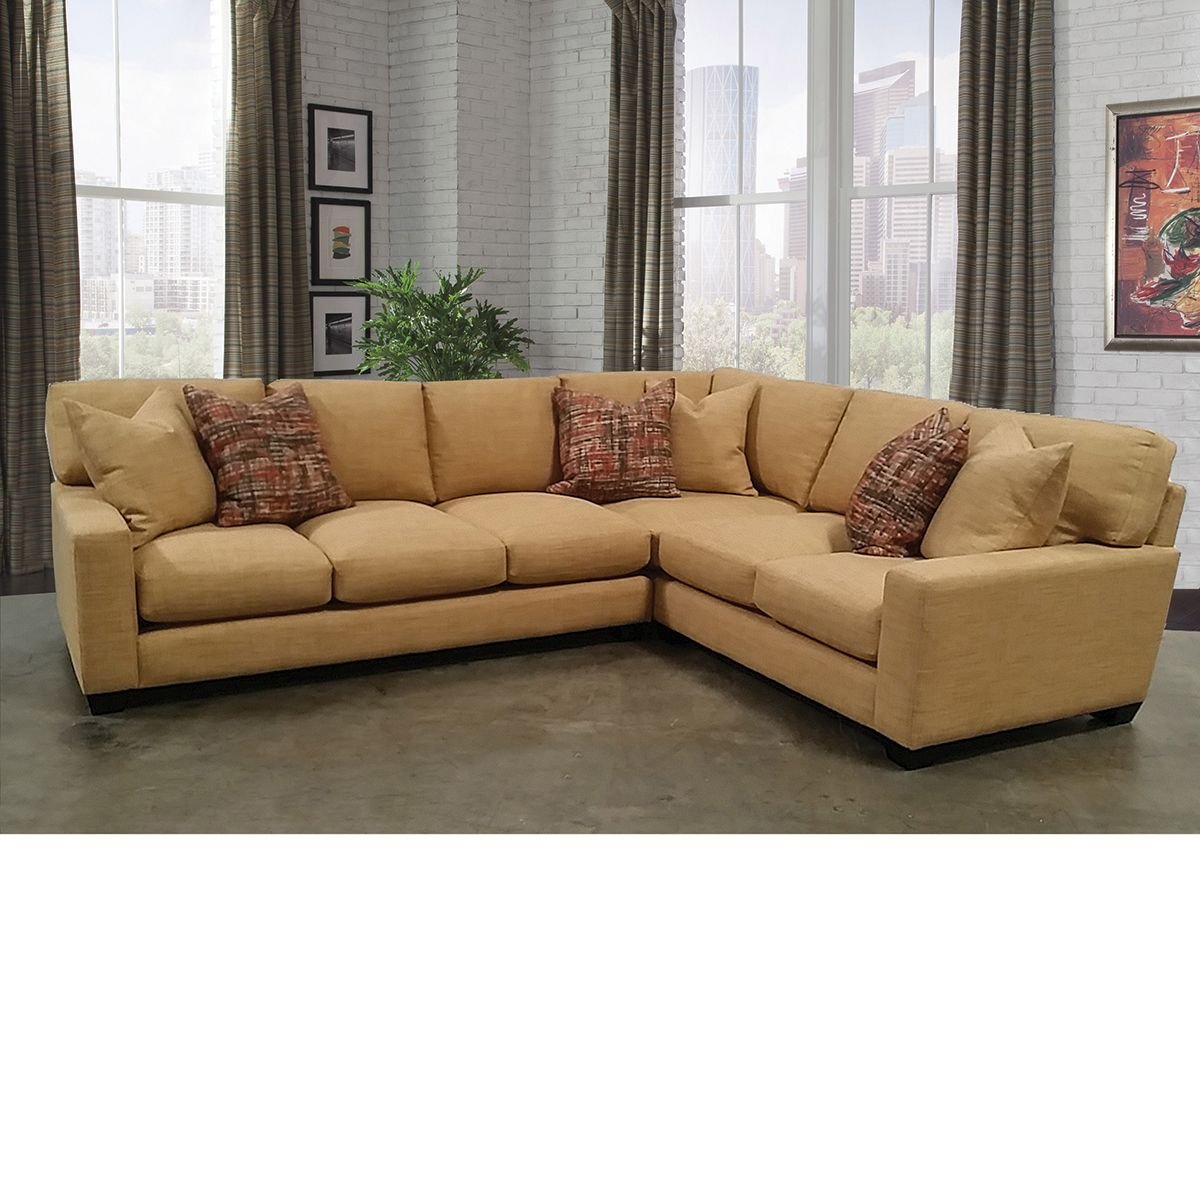 The Dump Luxe Furniture Outlet Luxe Furniture Furniture Furniture Outlet #the #dump #living #room #sets